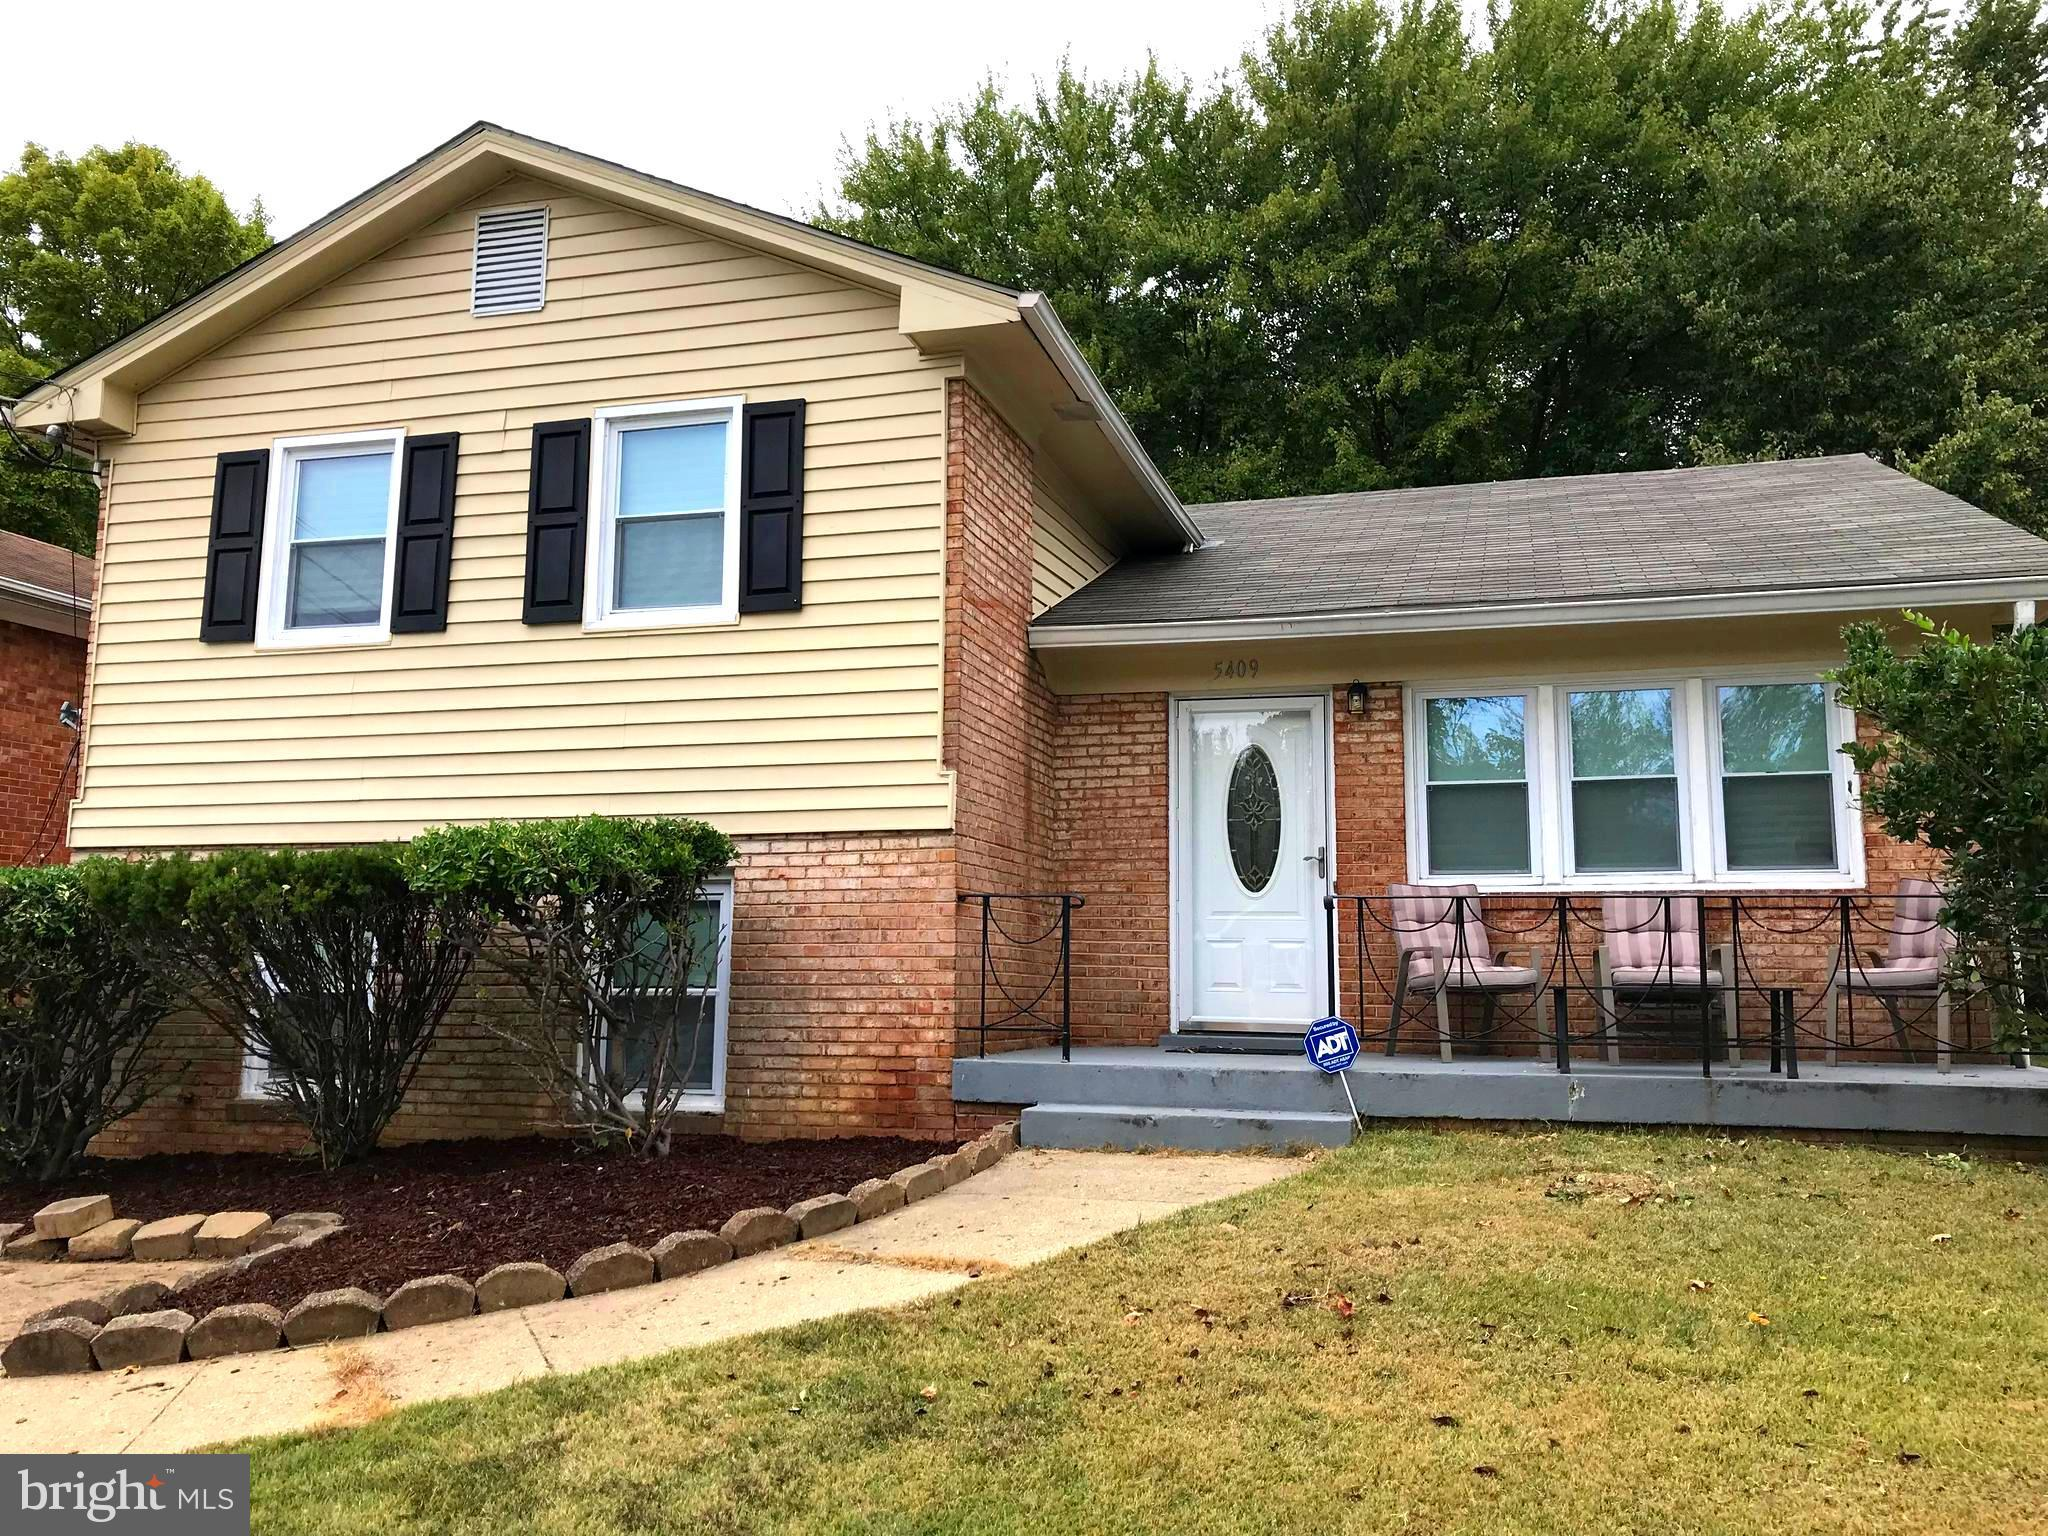 Fully Renovated in 2017!  4 Br. 3 Ba., New Stainless Steel Appliances, Granite Counter Tops, Hardwoods, New Windows, Roof, and Baths.  Huge Backyard with Plenty of Shade. Off Street Parking for 4 Cars. Fireplace.  Convenient Location.   Back on the Market!   Short Sale was approved!!  Pending Release.